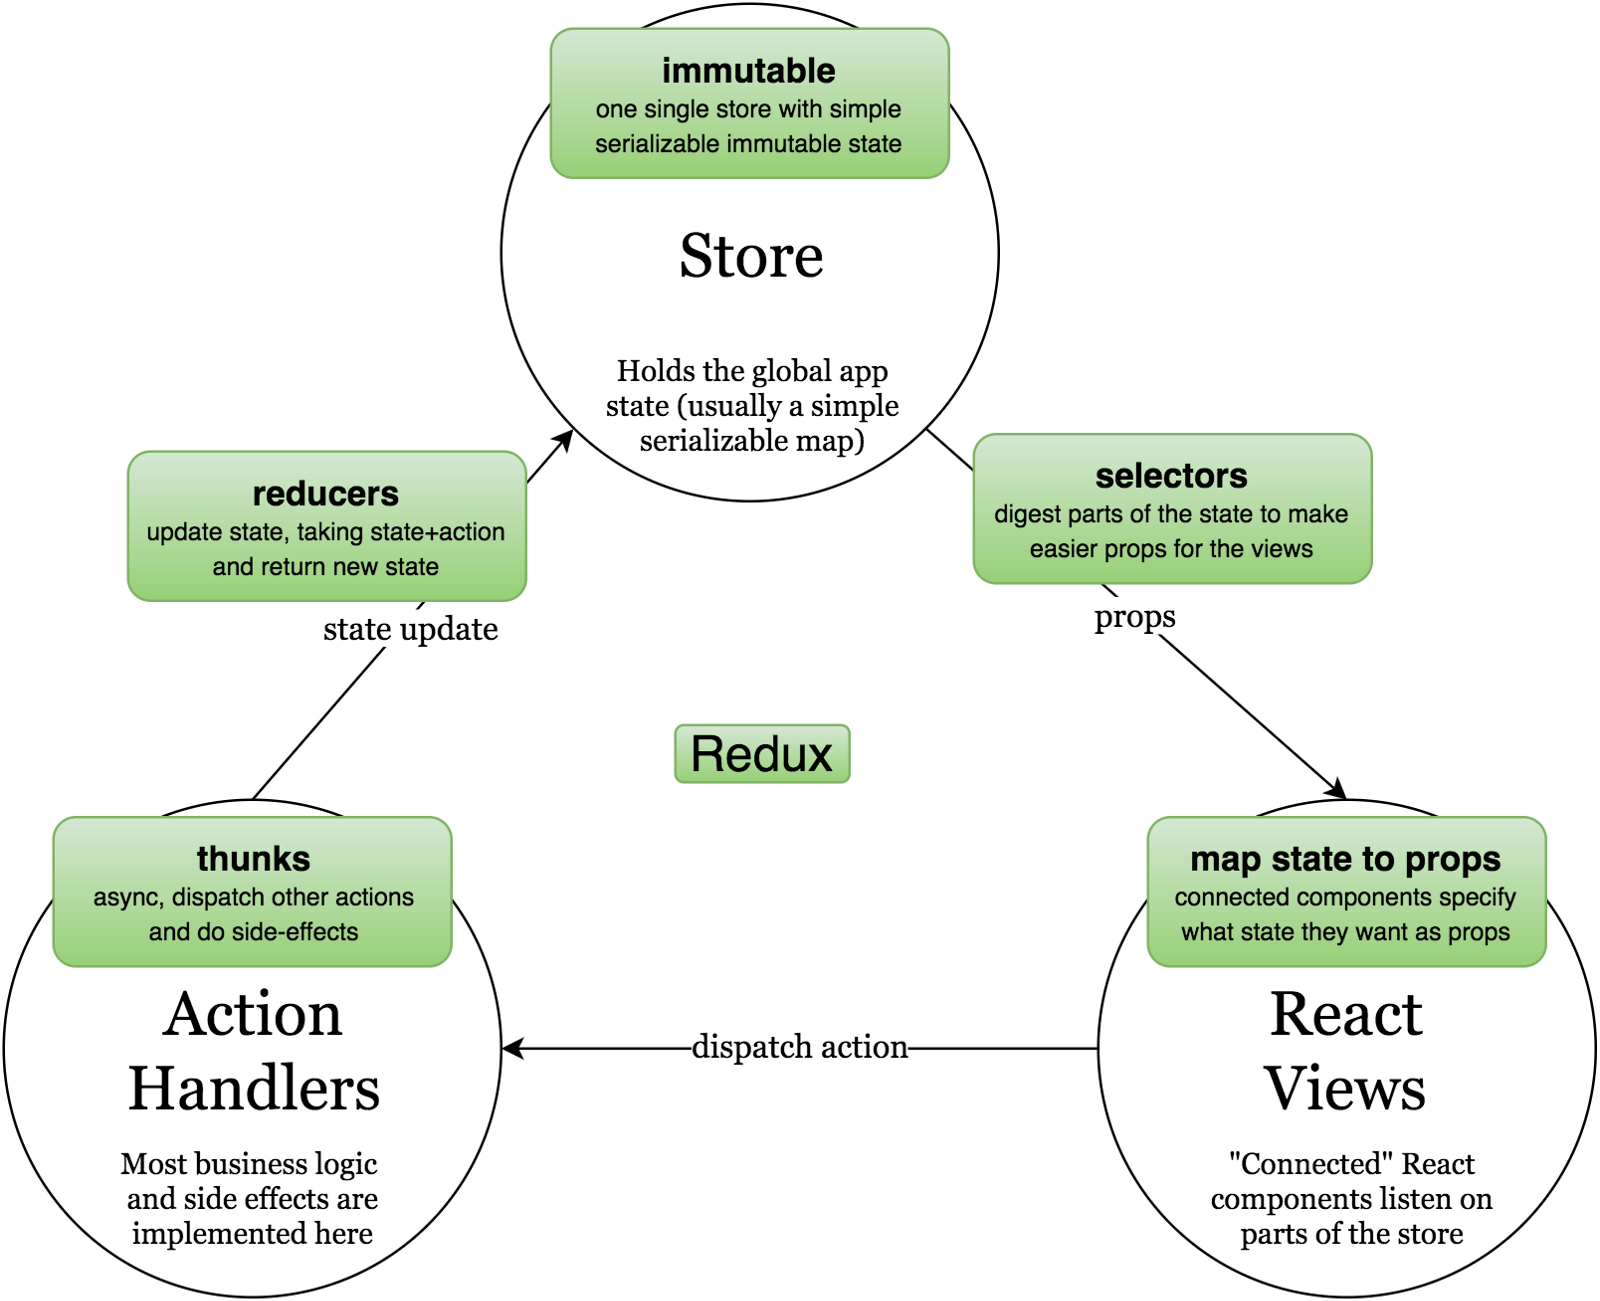 hight resolution of  placing them on the flux diagram these are simply the technical names of the various redux constructs that implement the different parts of the cycle